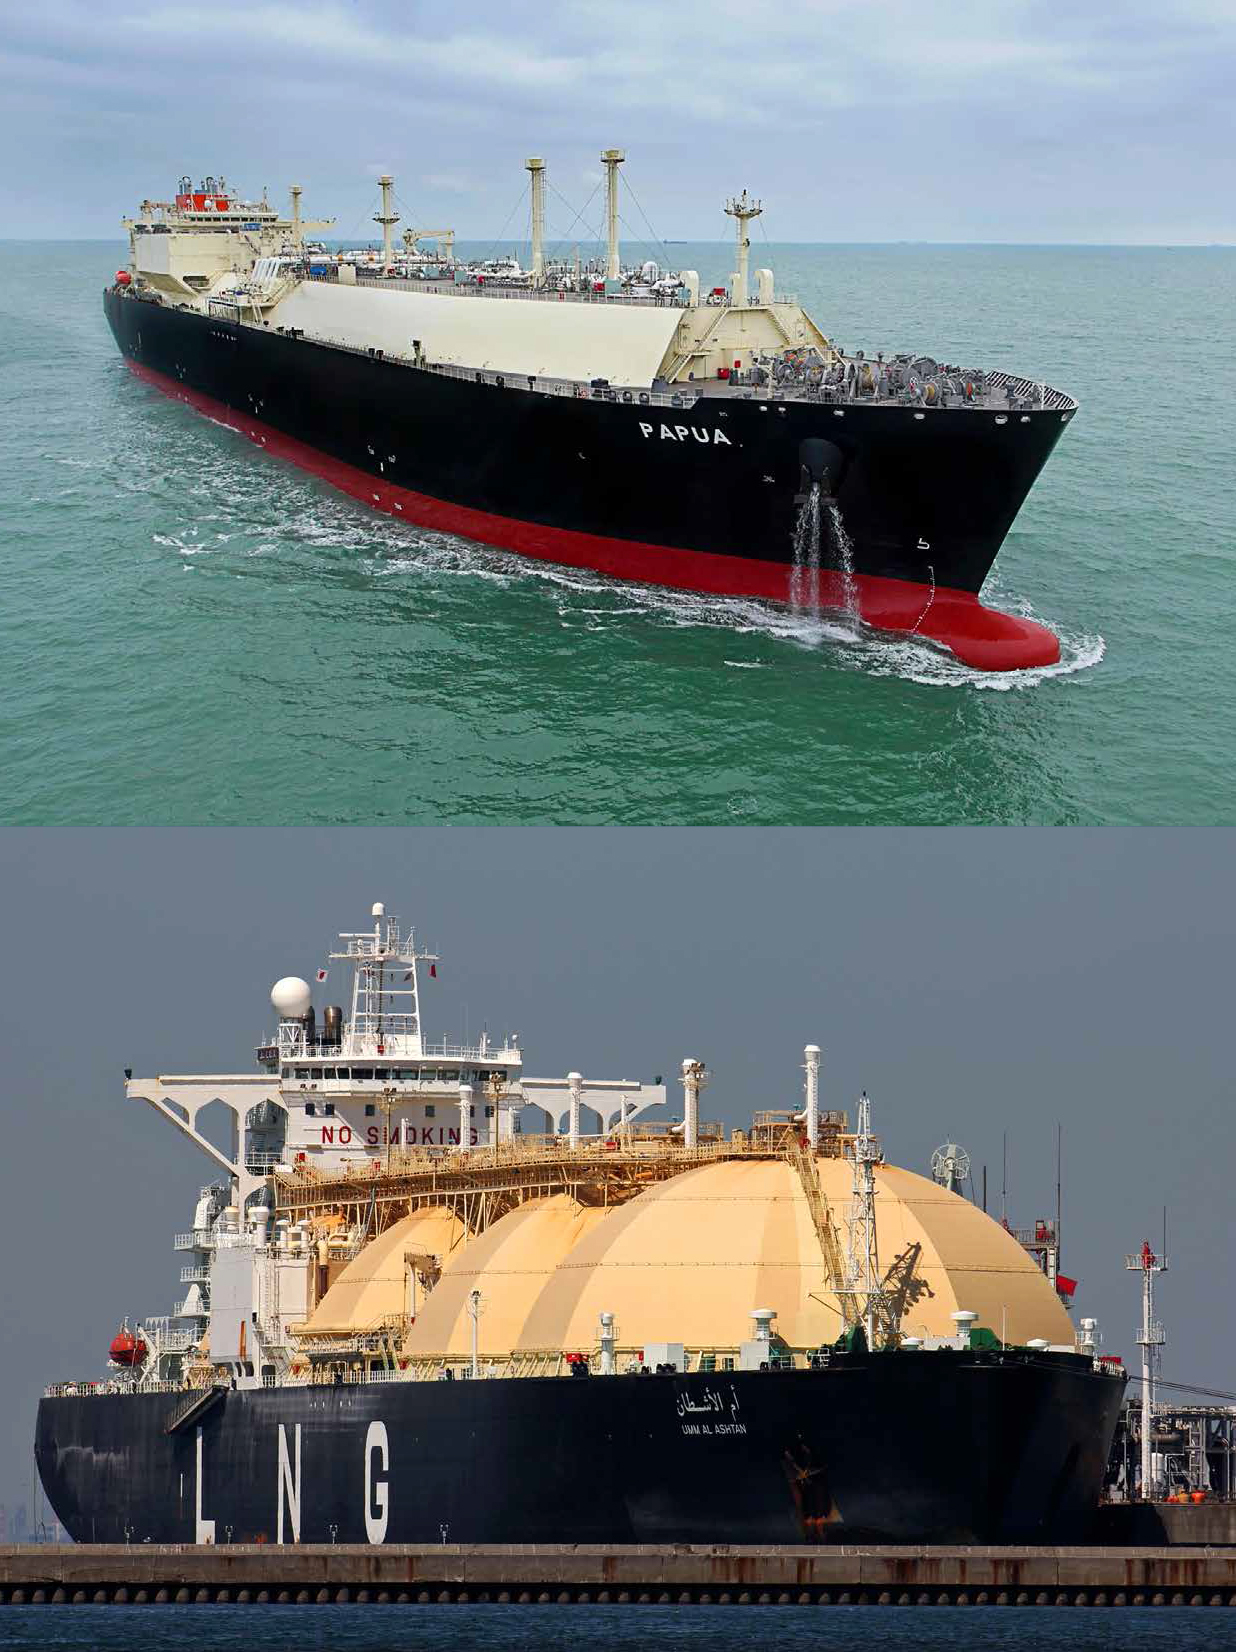 More than 20 LNG carriers have been fire technically ...